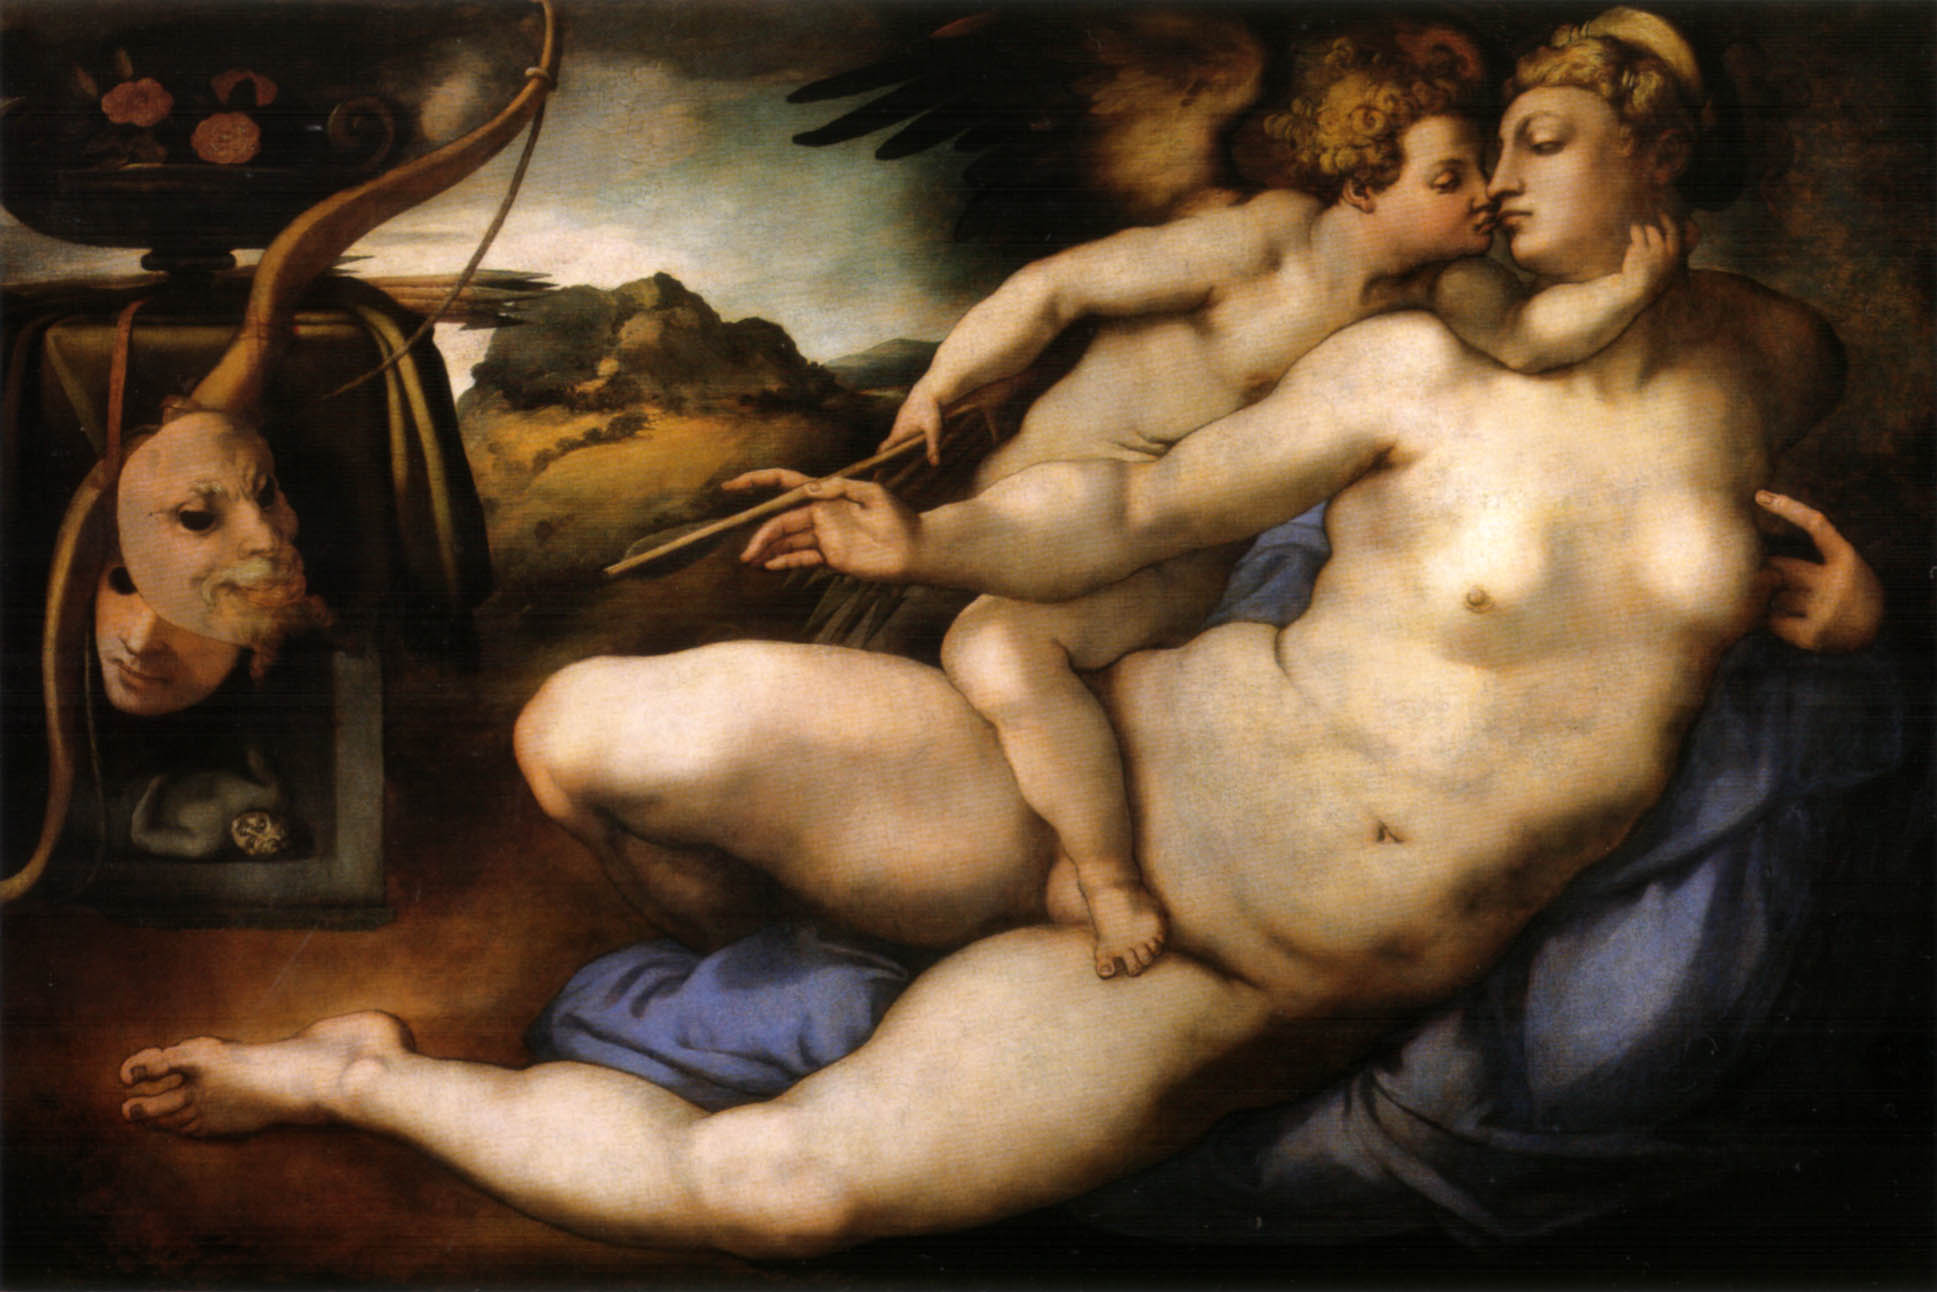 michelangelo and mannerism Explore the artistic life of michelangelo, considered the most famous artist of the italian renaissance and among the most exalted artists in all of history, on biographycom.